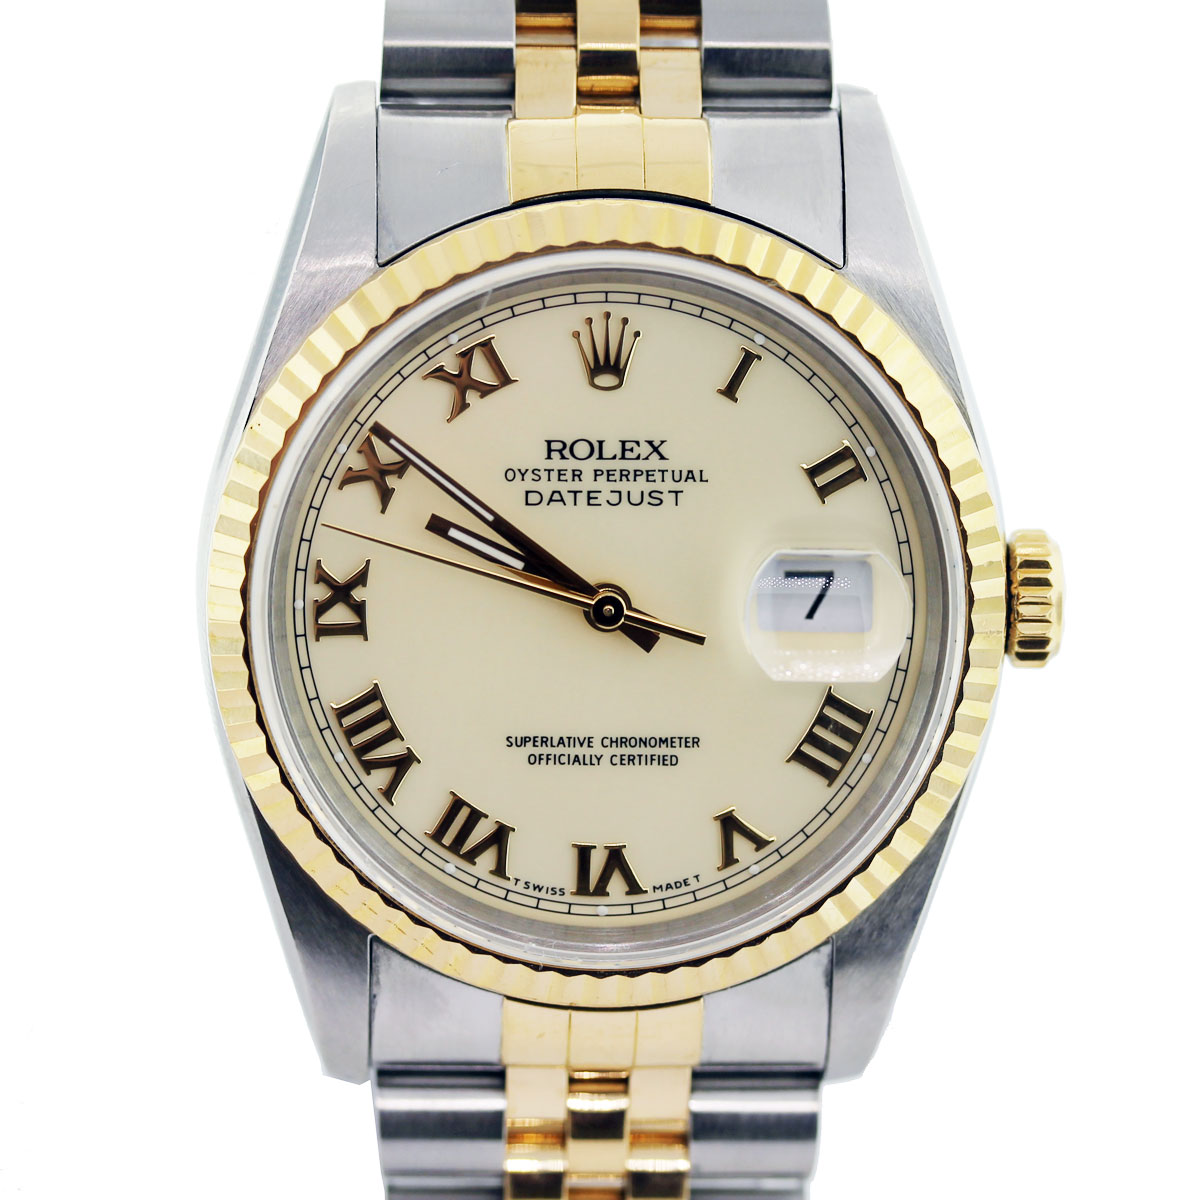 Rolex Datejust 16233 Watch